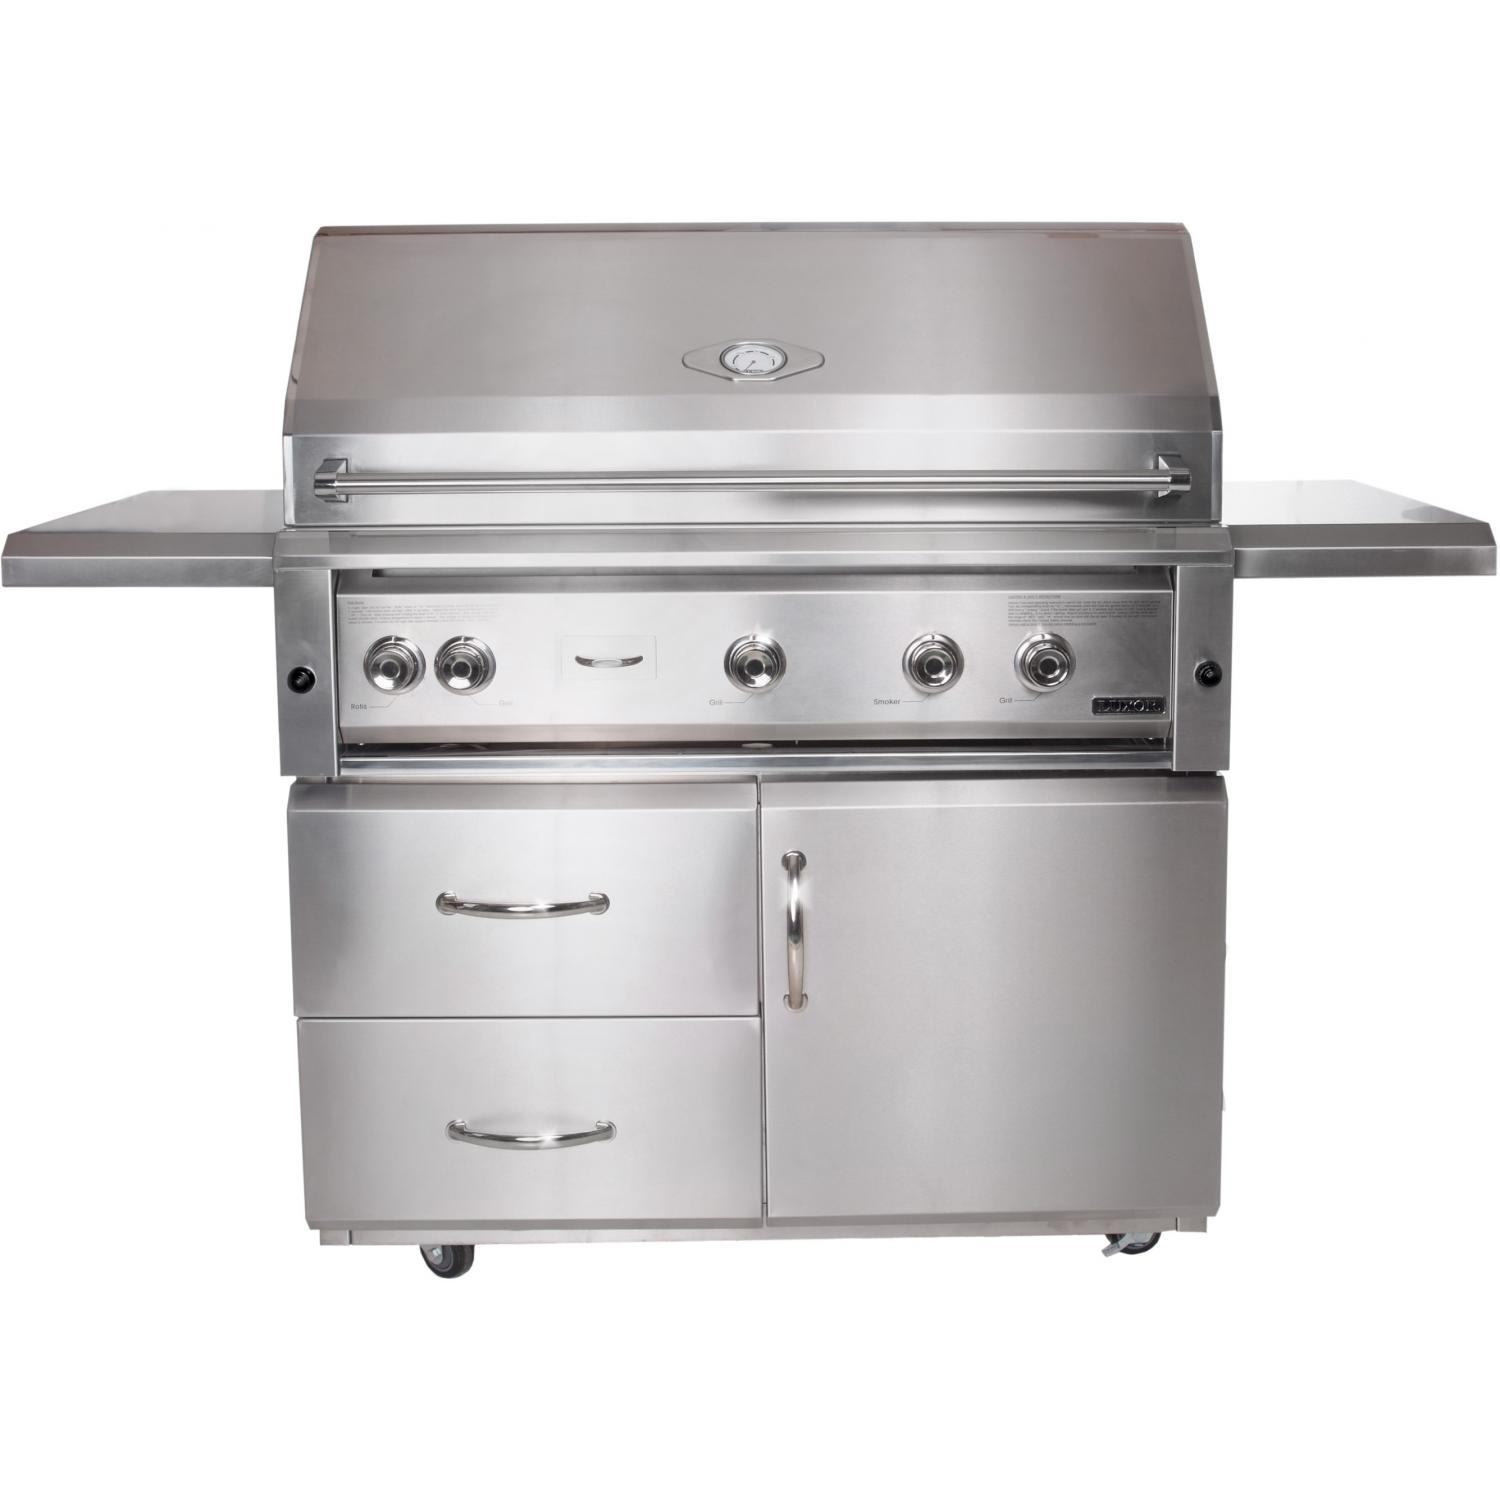 Luxor Gas Grills 42 Inch Natural Gas Grill On Cart With Rotisserie AHT-42CV-FR-NG